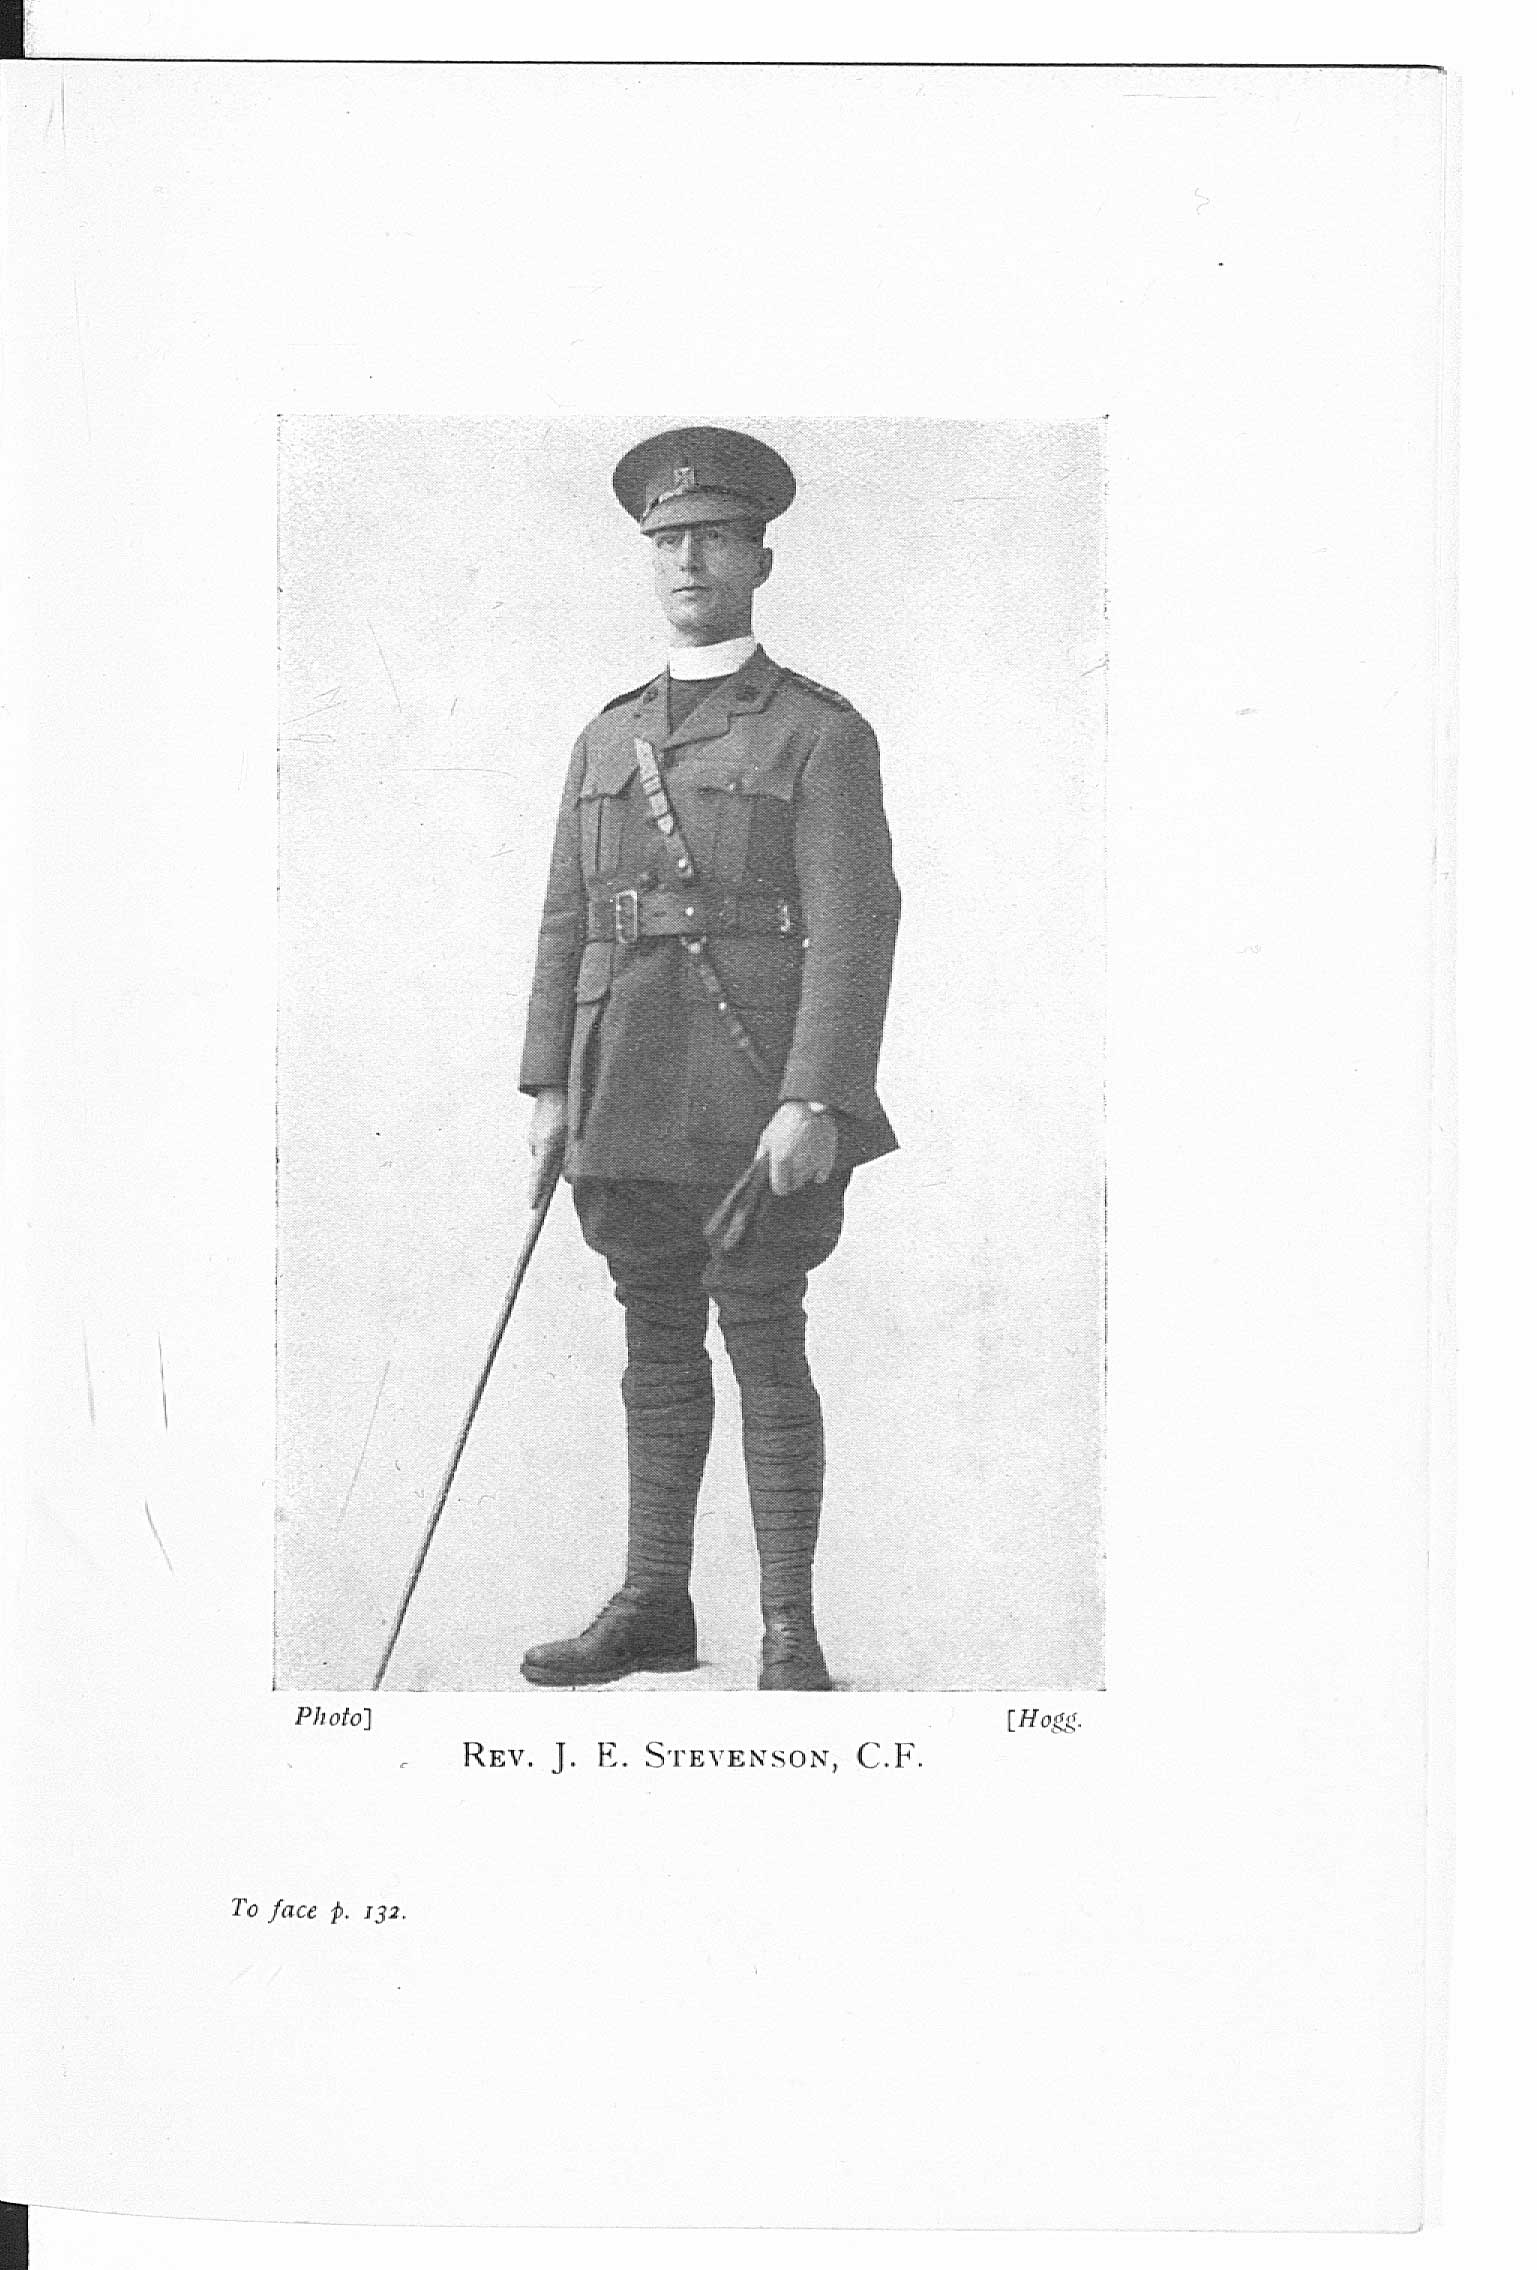 Photograph from 'Some Chaplains in Khaki', a book by Reverend Frederic Chambers Spurr about the work of army chaplains.